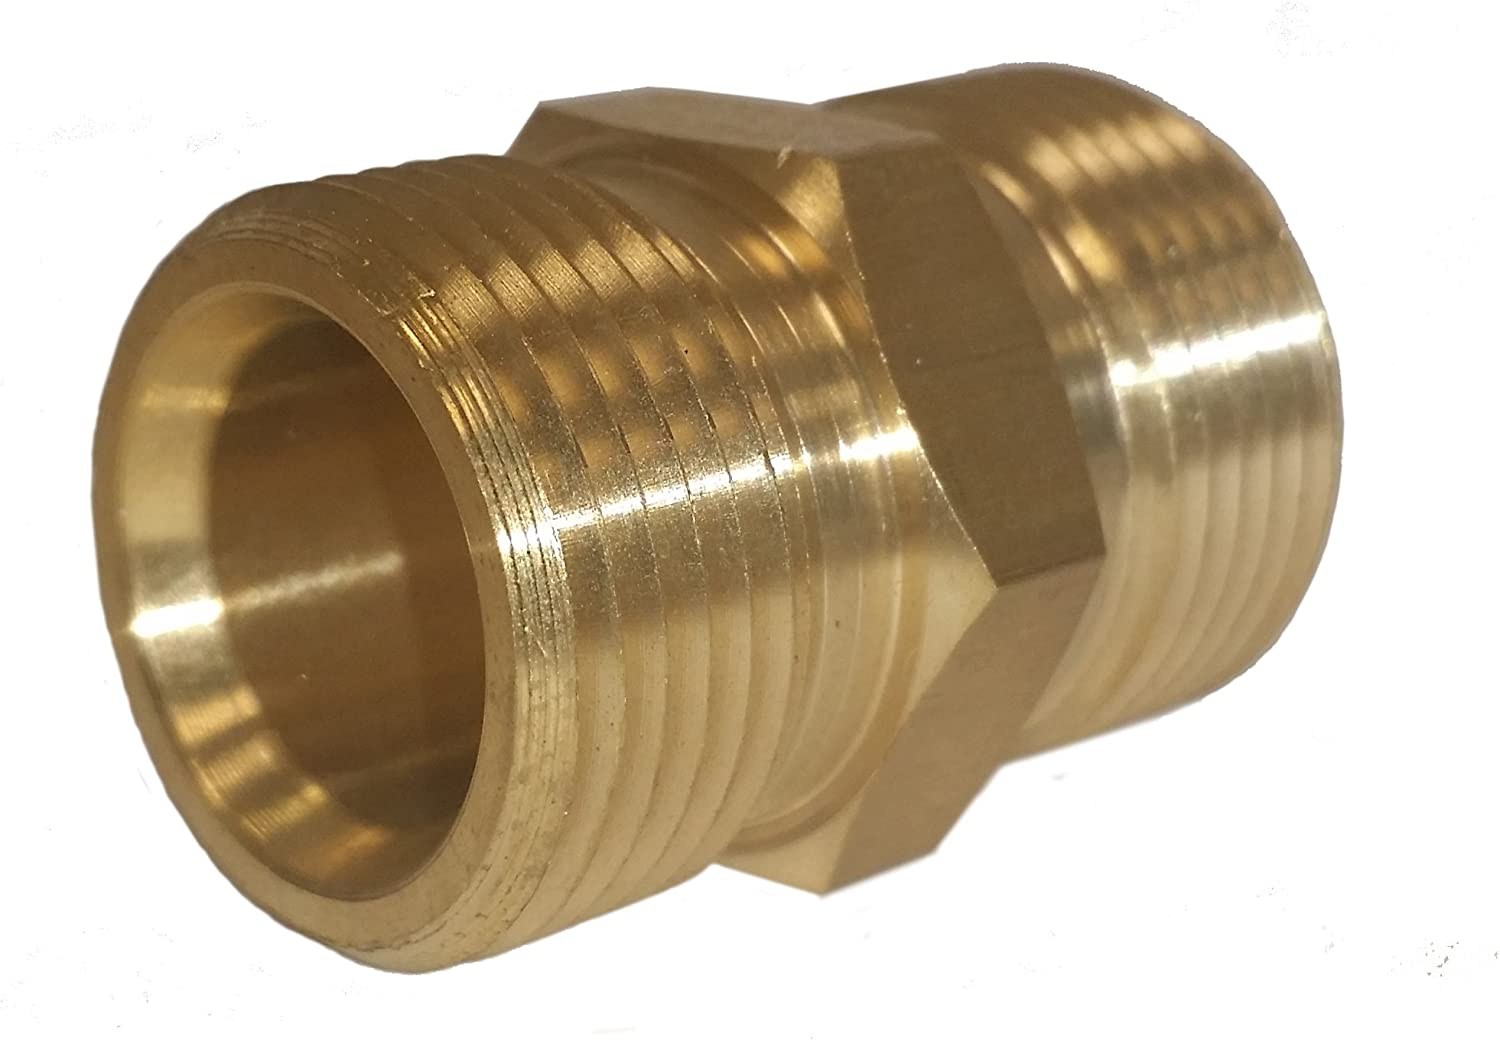 European Hose Coupler M22 x M22 14mm Fits Most Hoses W// Screw On Couplers